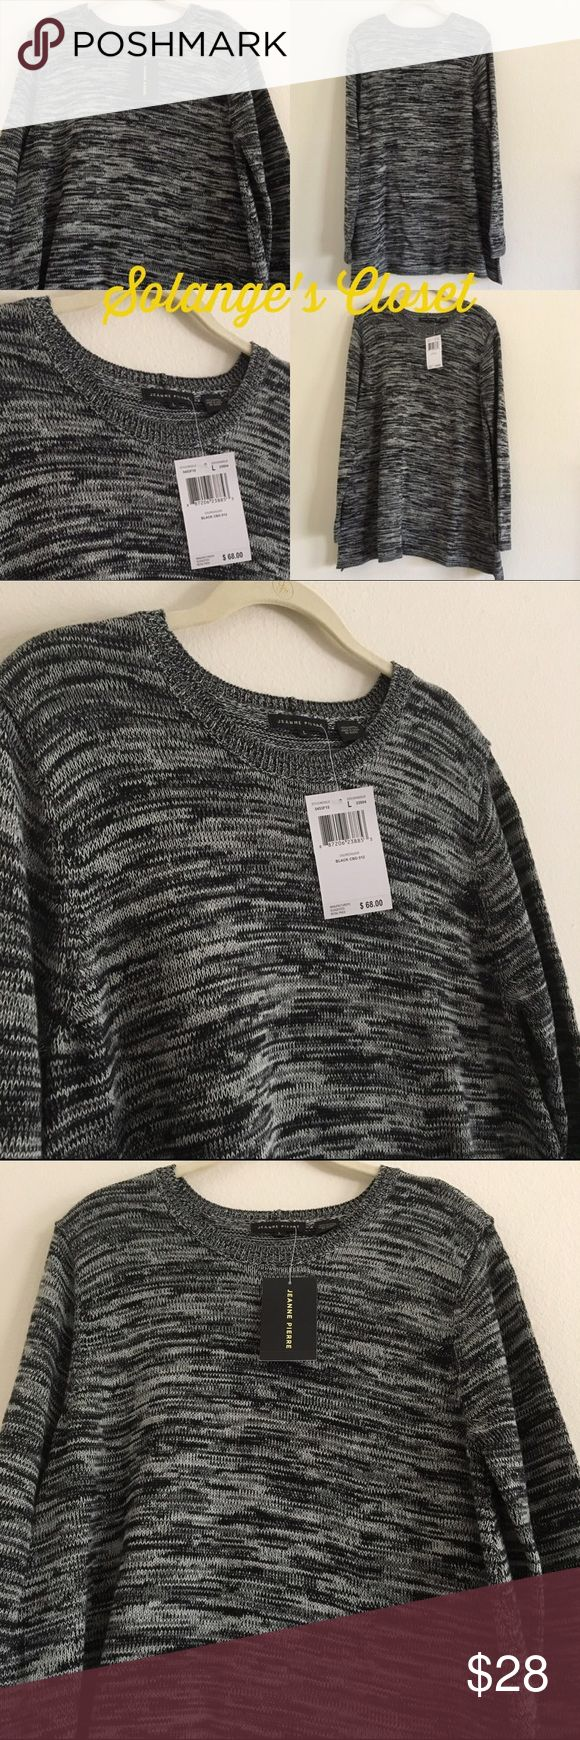 OVERSIZED SWEATER Tagged as Zara for exposure only! Size large but will fit a medium best! Zara Sweaters Crew & Scoop Necks